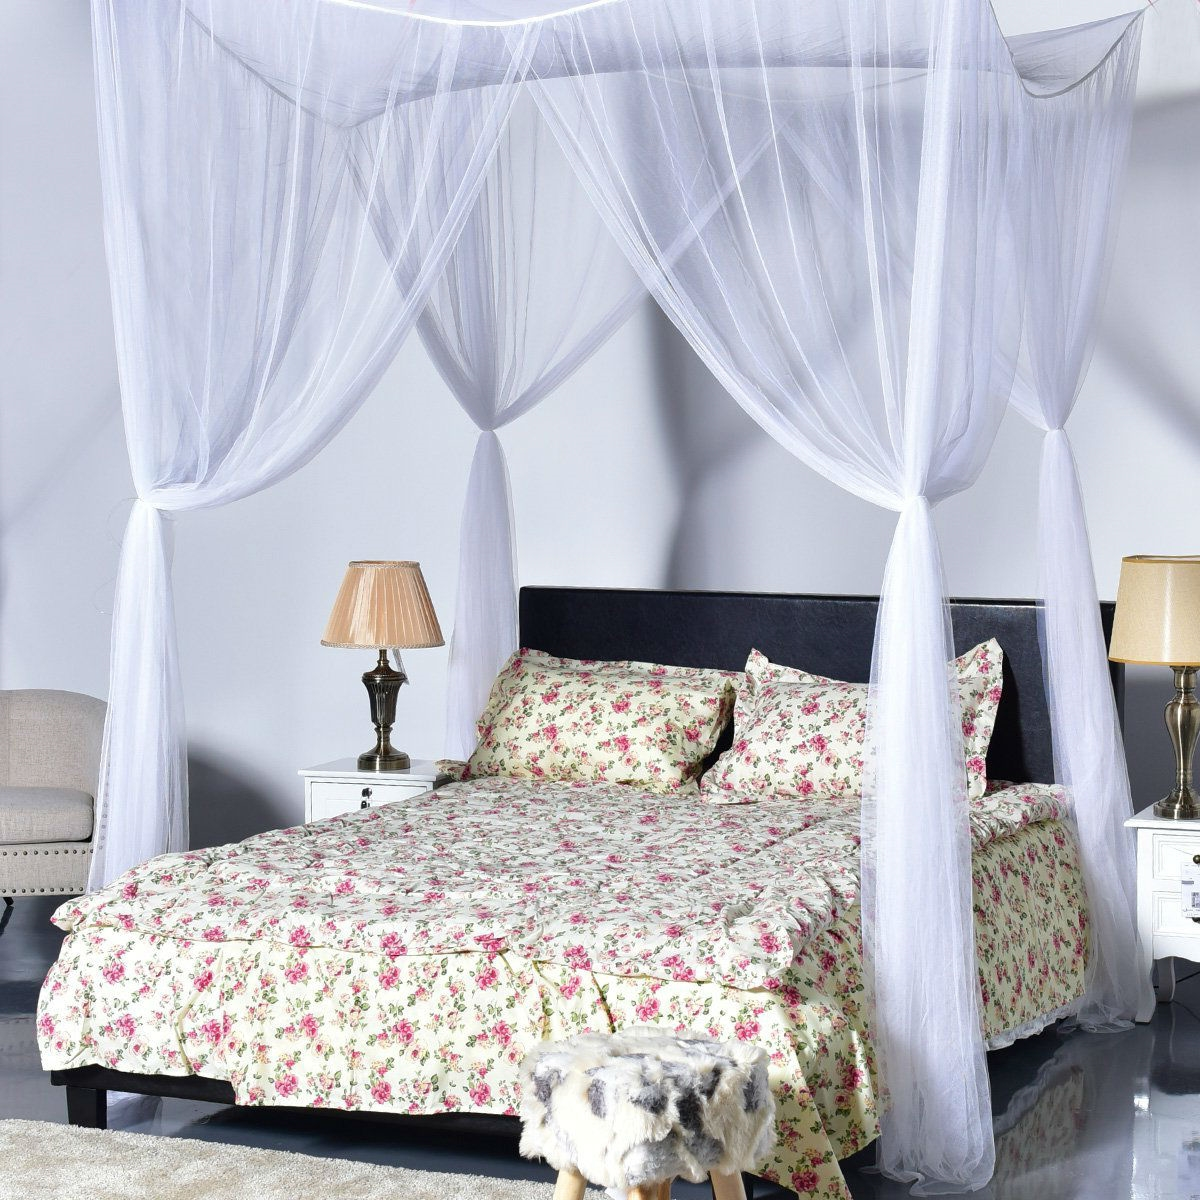 white 4 post bed princess canopy net mosquito netting for full or queen size beds